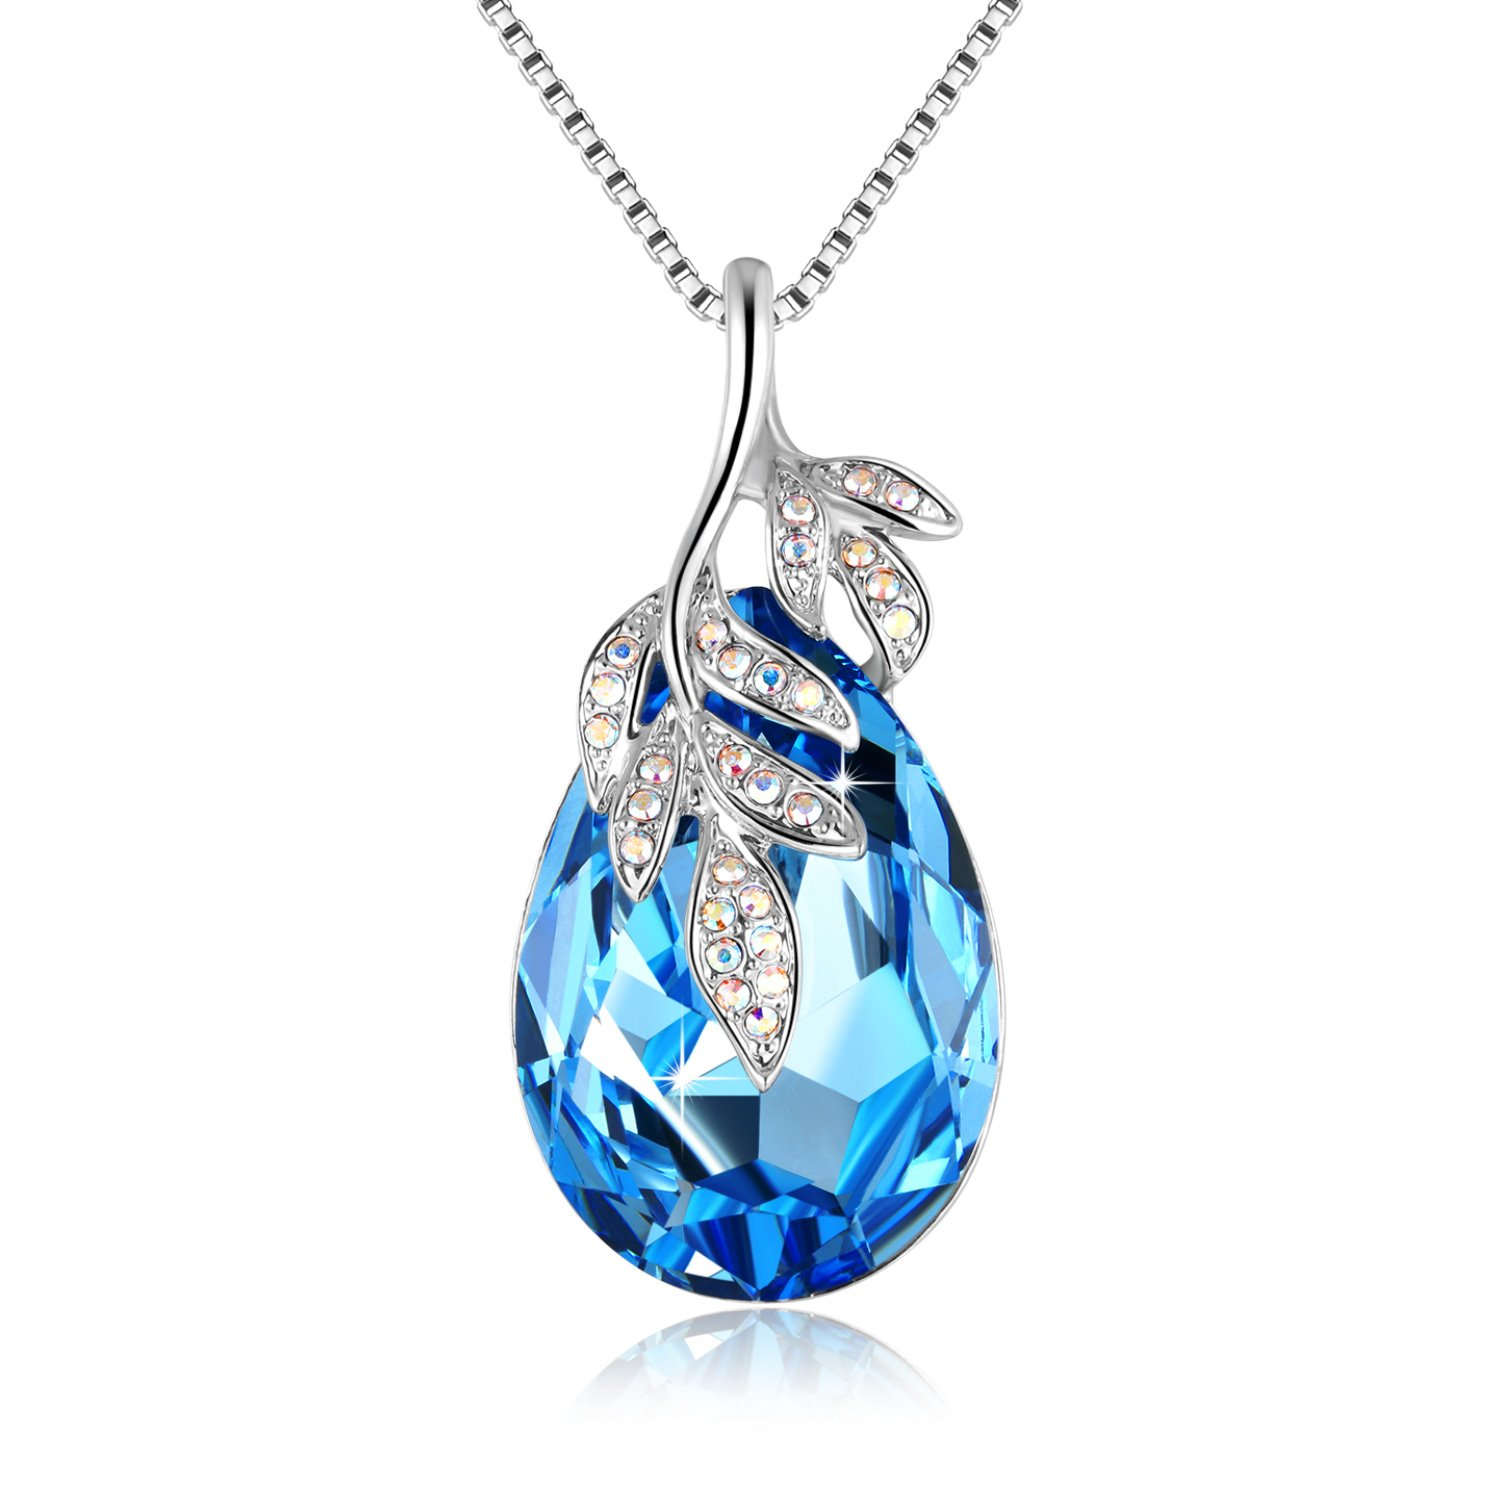 Women Blue Necklace Big Oval Swarovski Crystal with 5A Zircon Leaf Pendant Luxury Jewelry Gifts for Mom Daughter Girl Friend